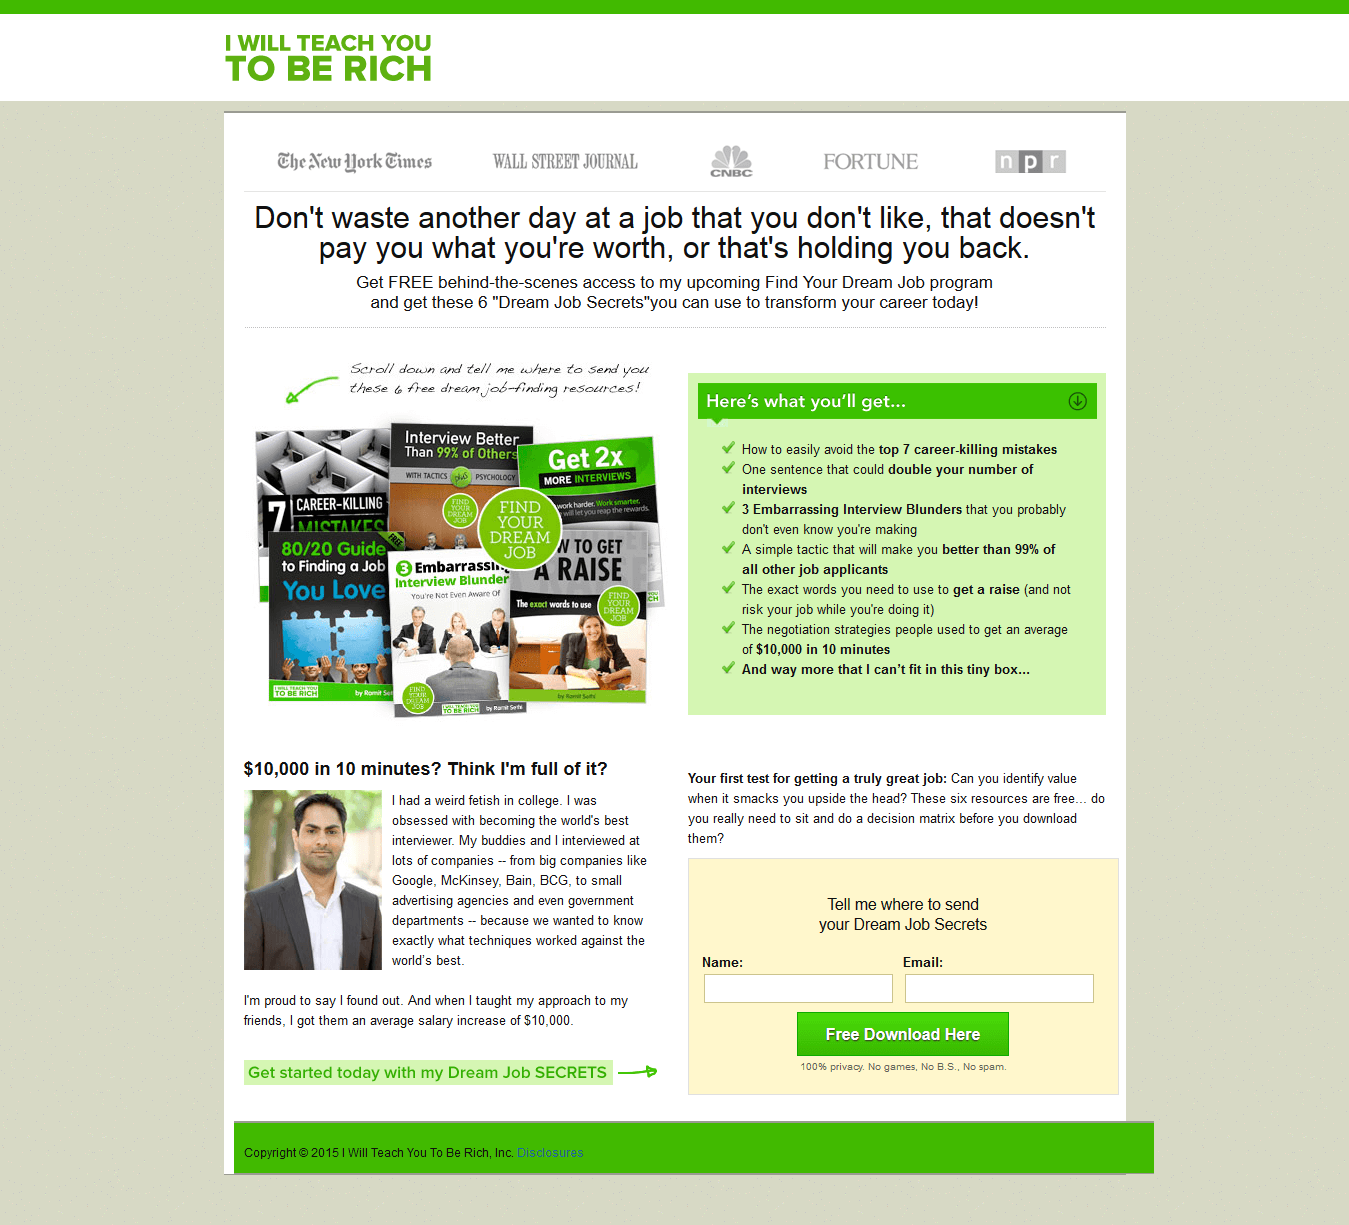 I Will Teach You to be RIch Sales Page Example